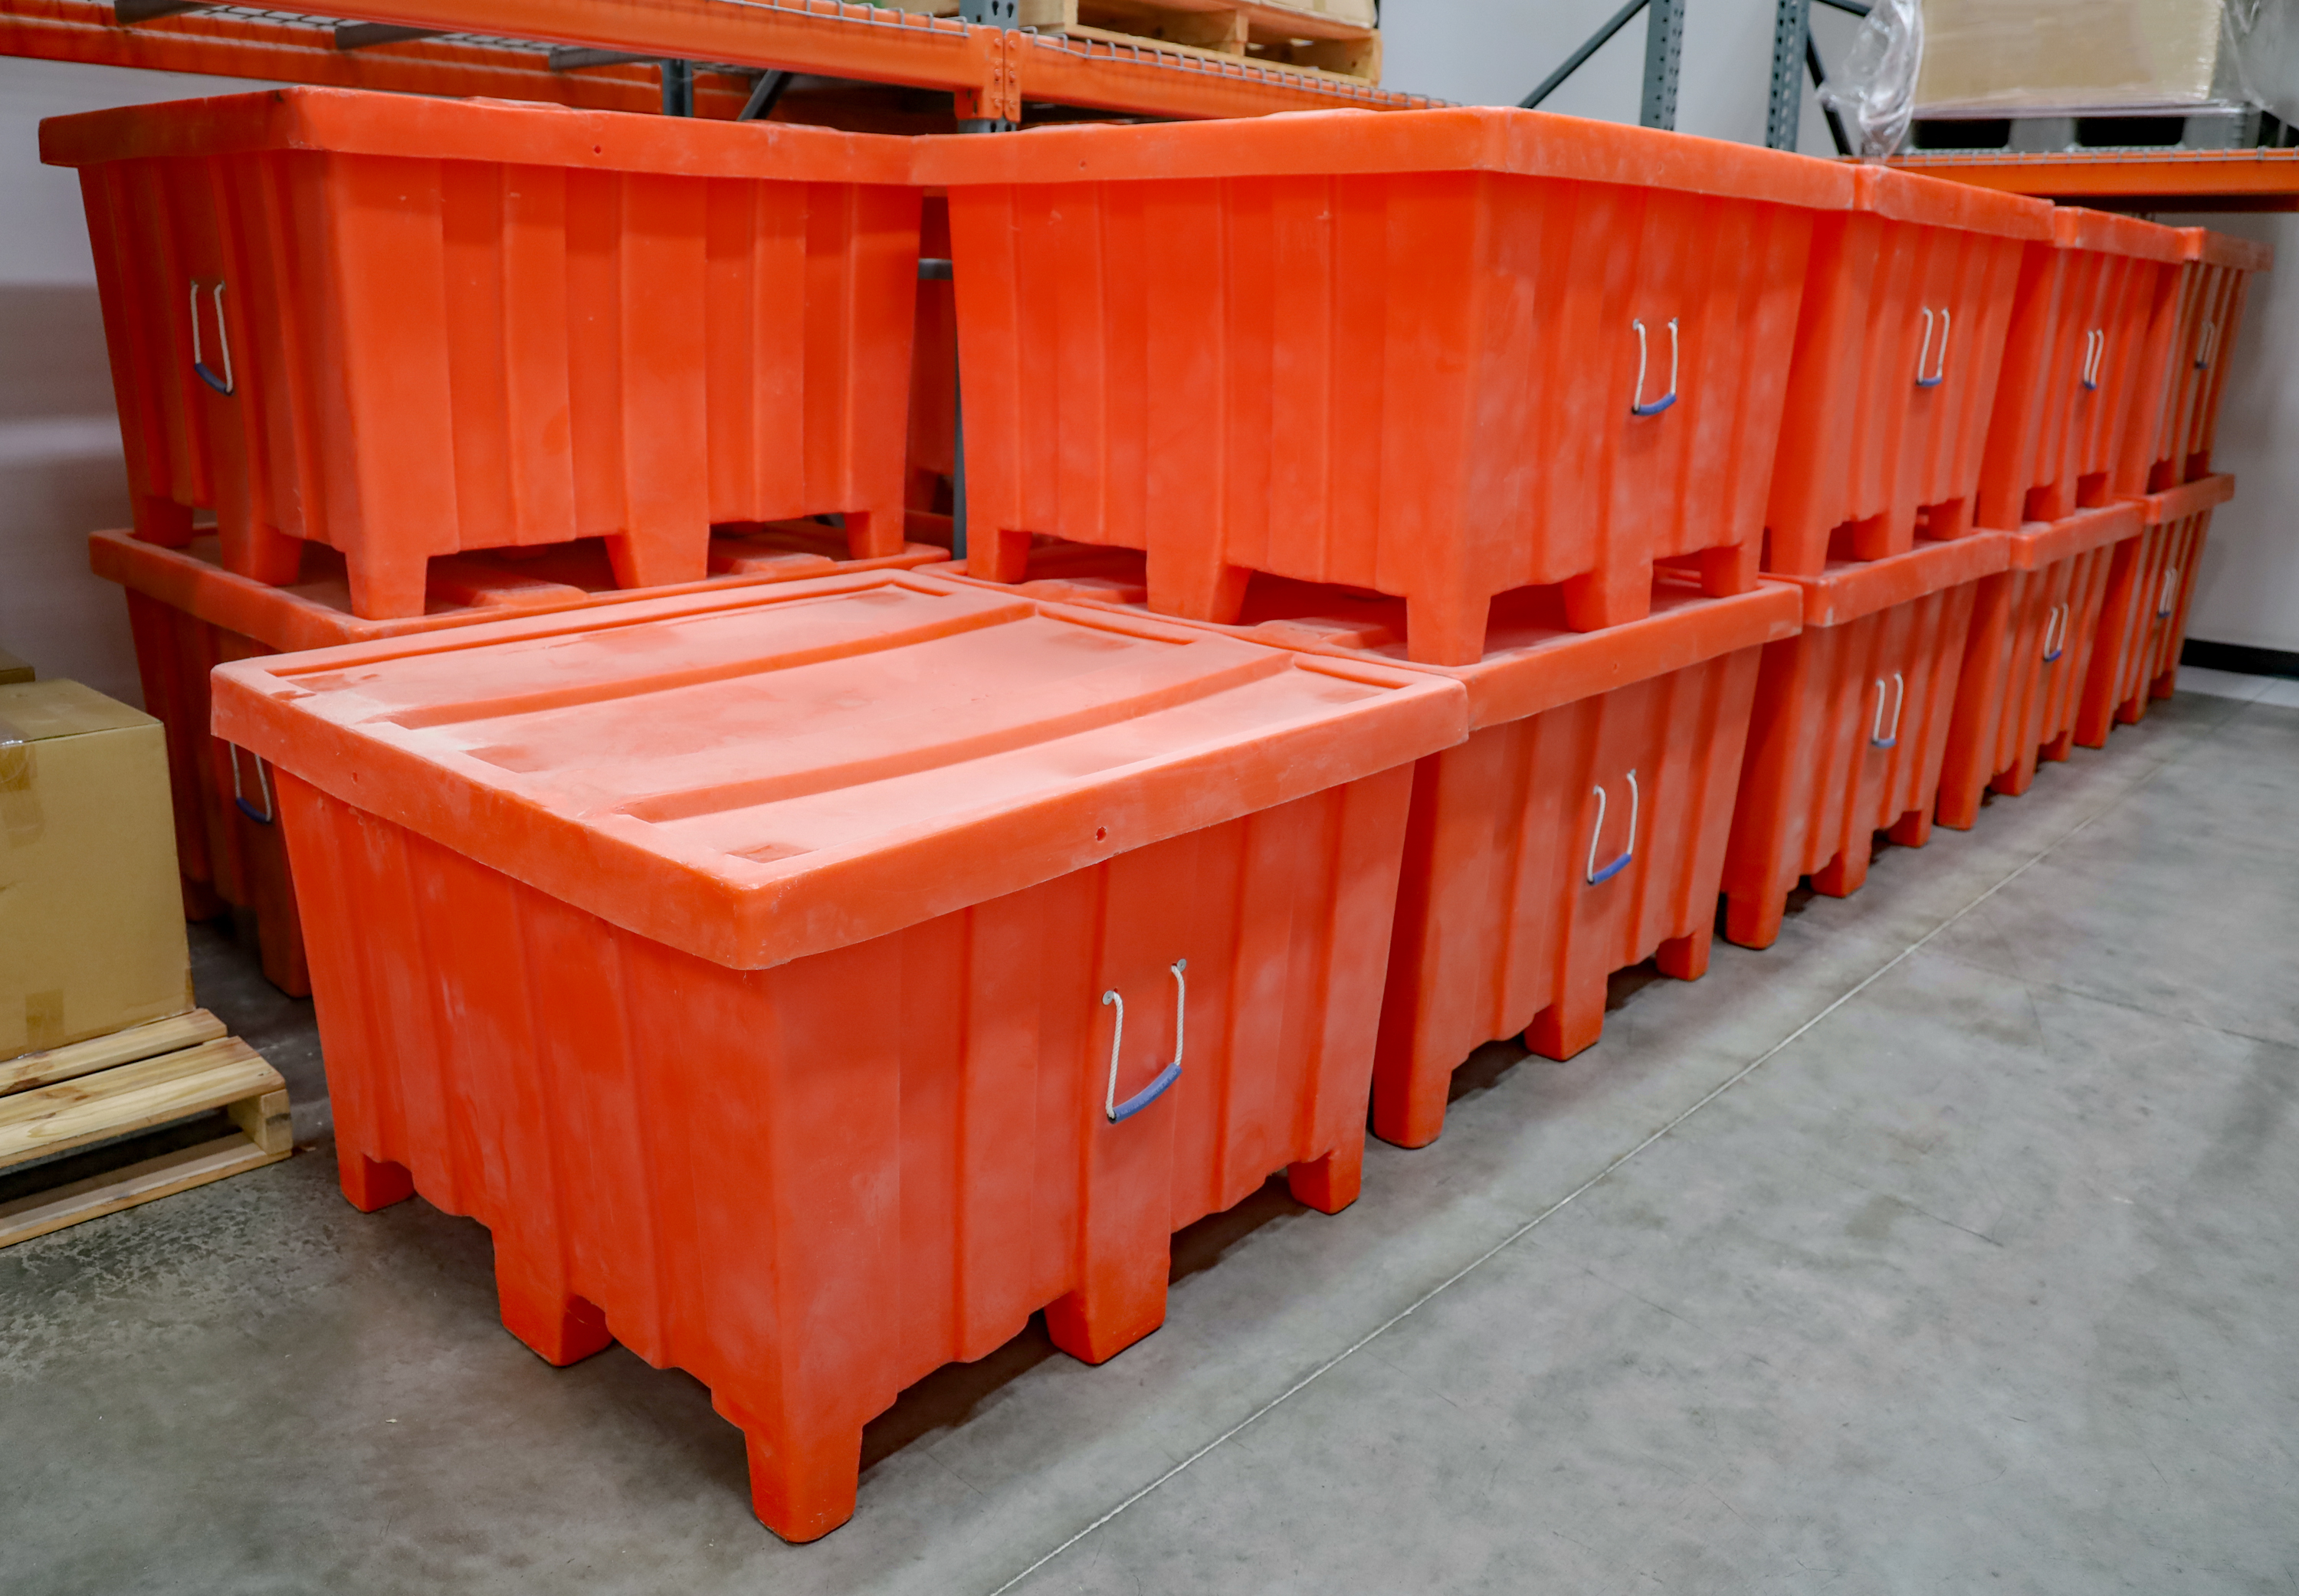 Large orange bulk containers with lids